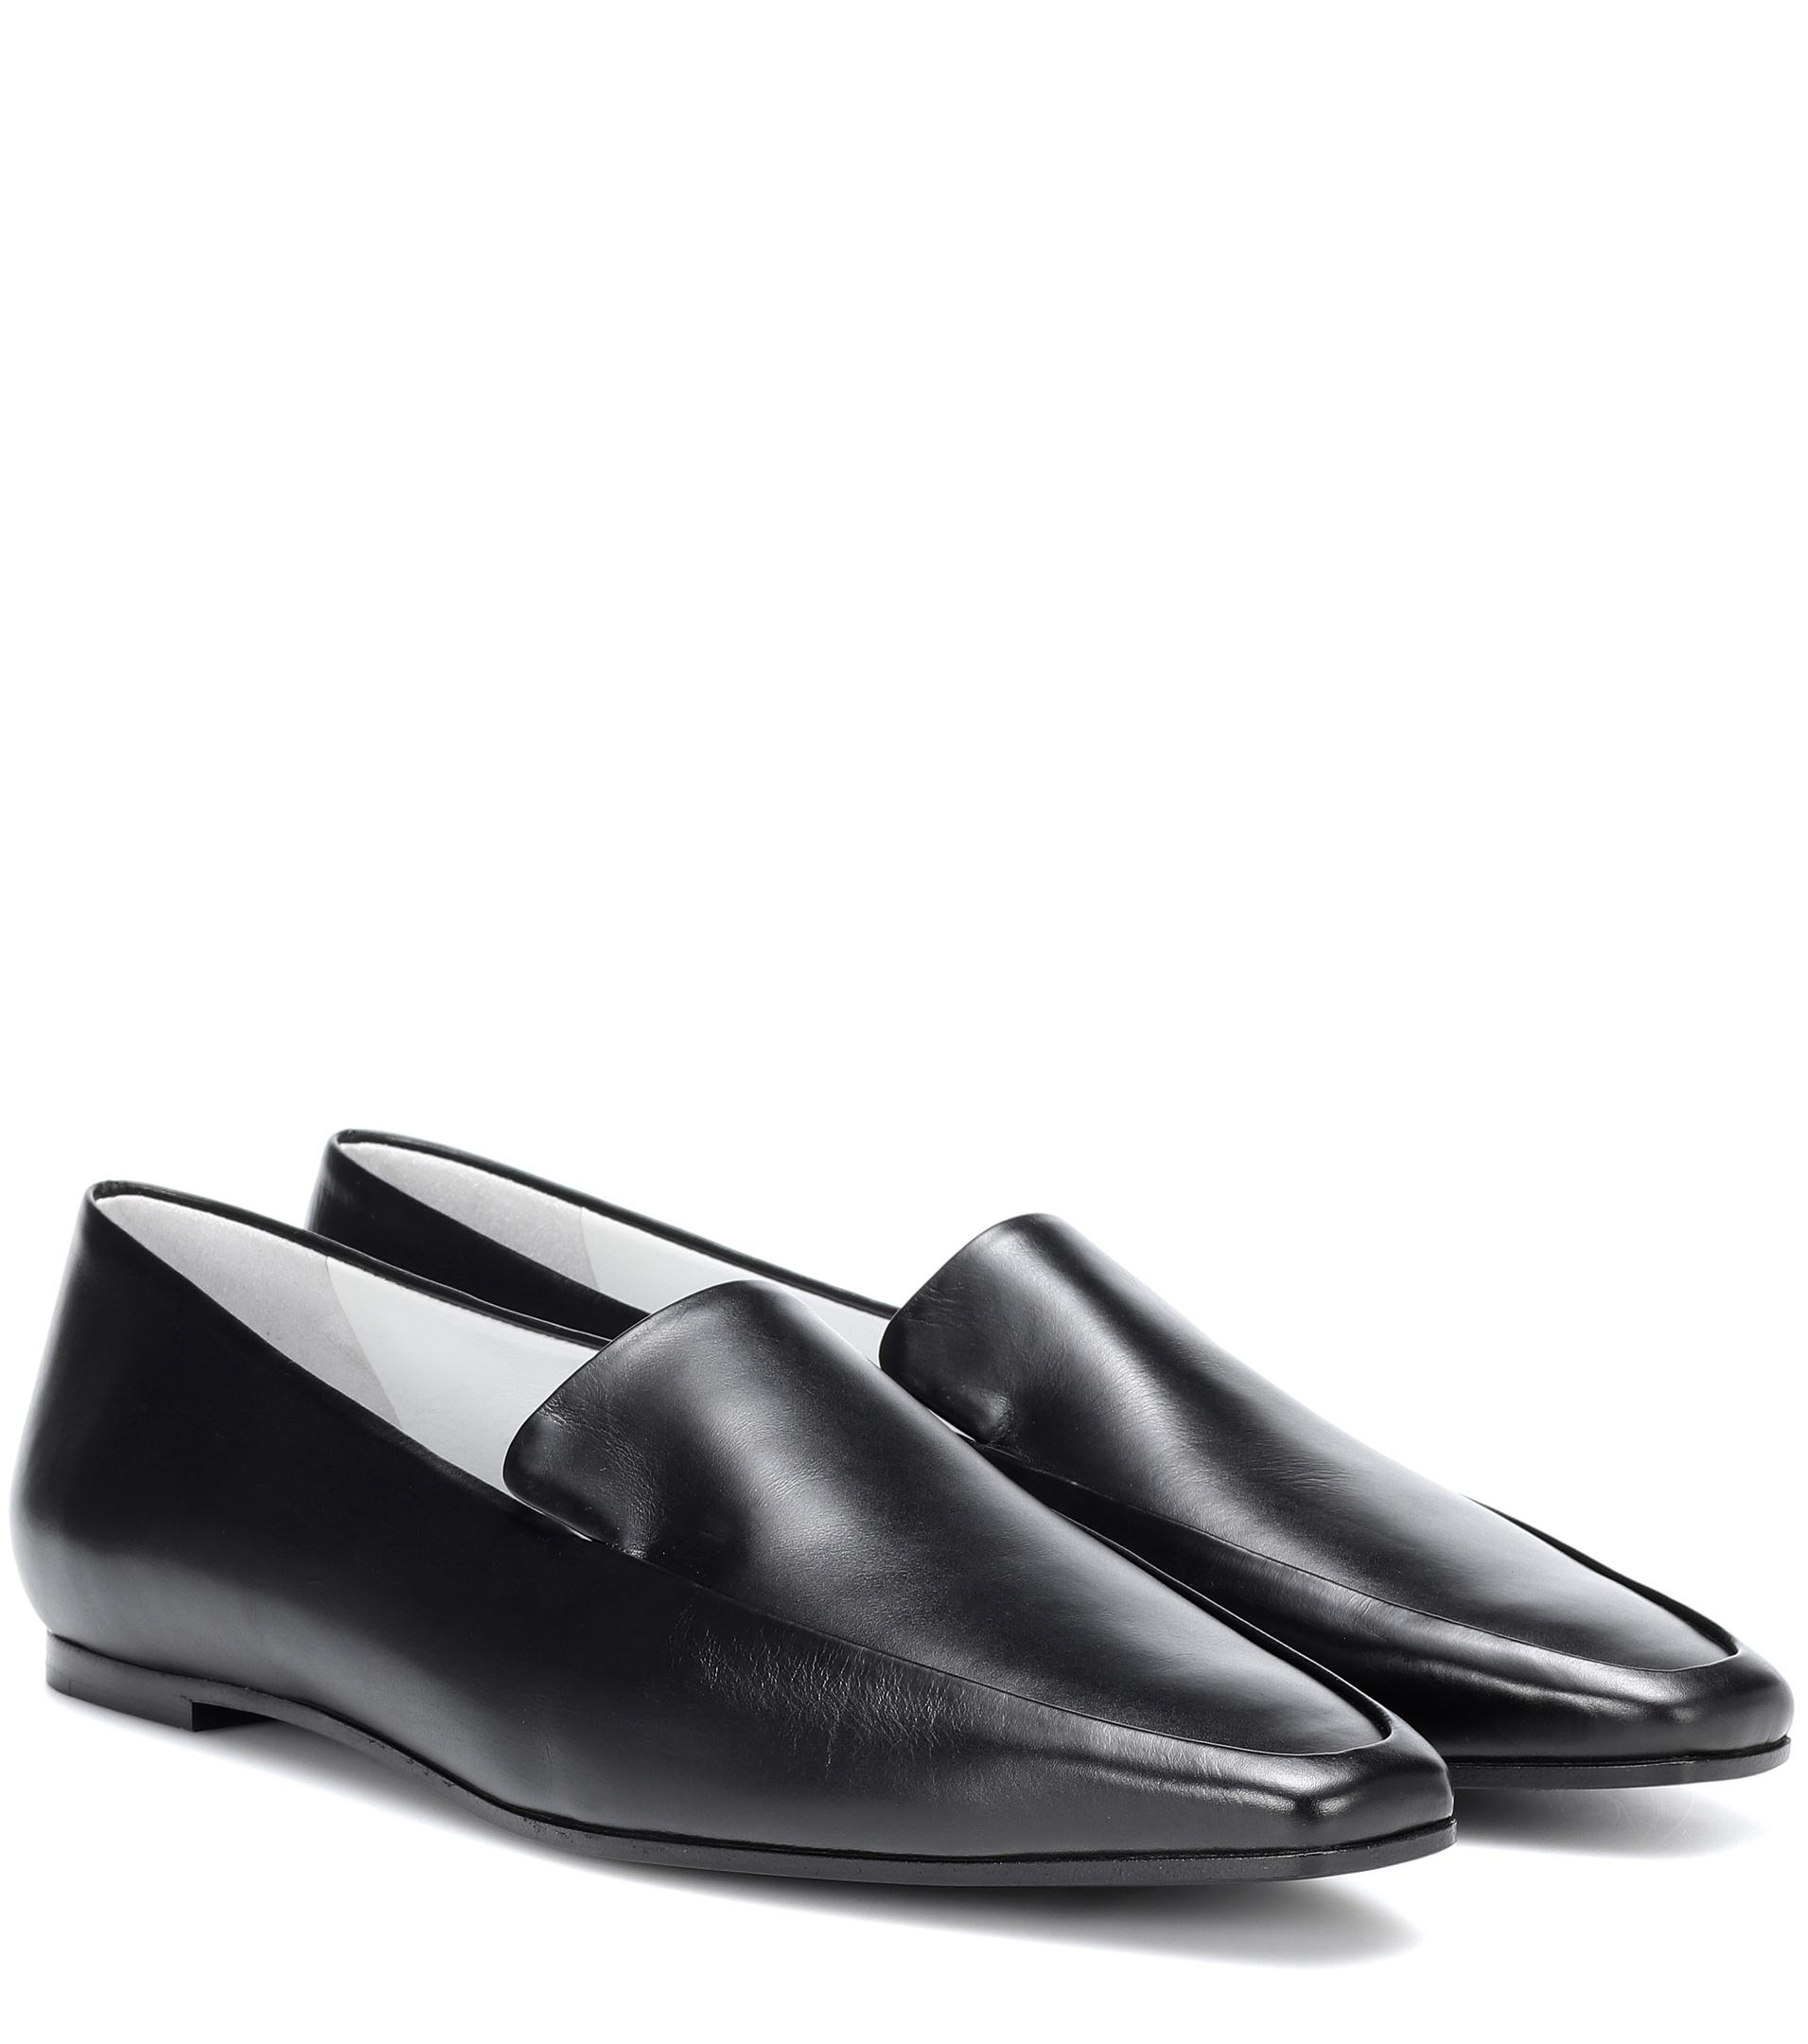 cf2324e7c2d The Row Minimal Leather Loafers in Black - Lyst